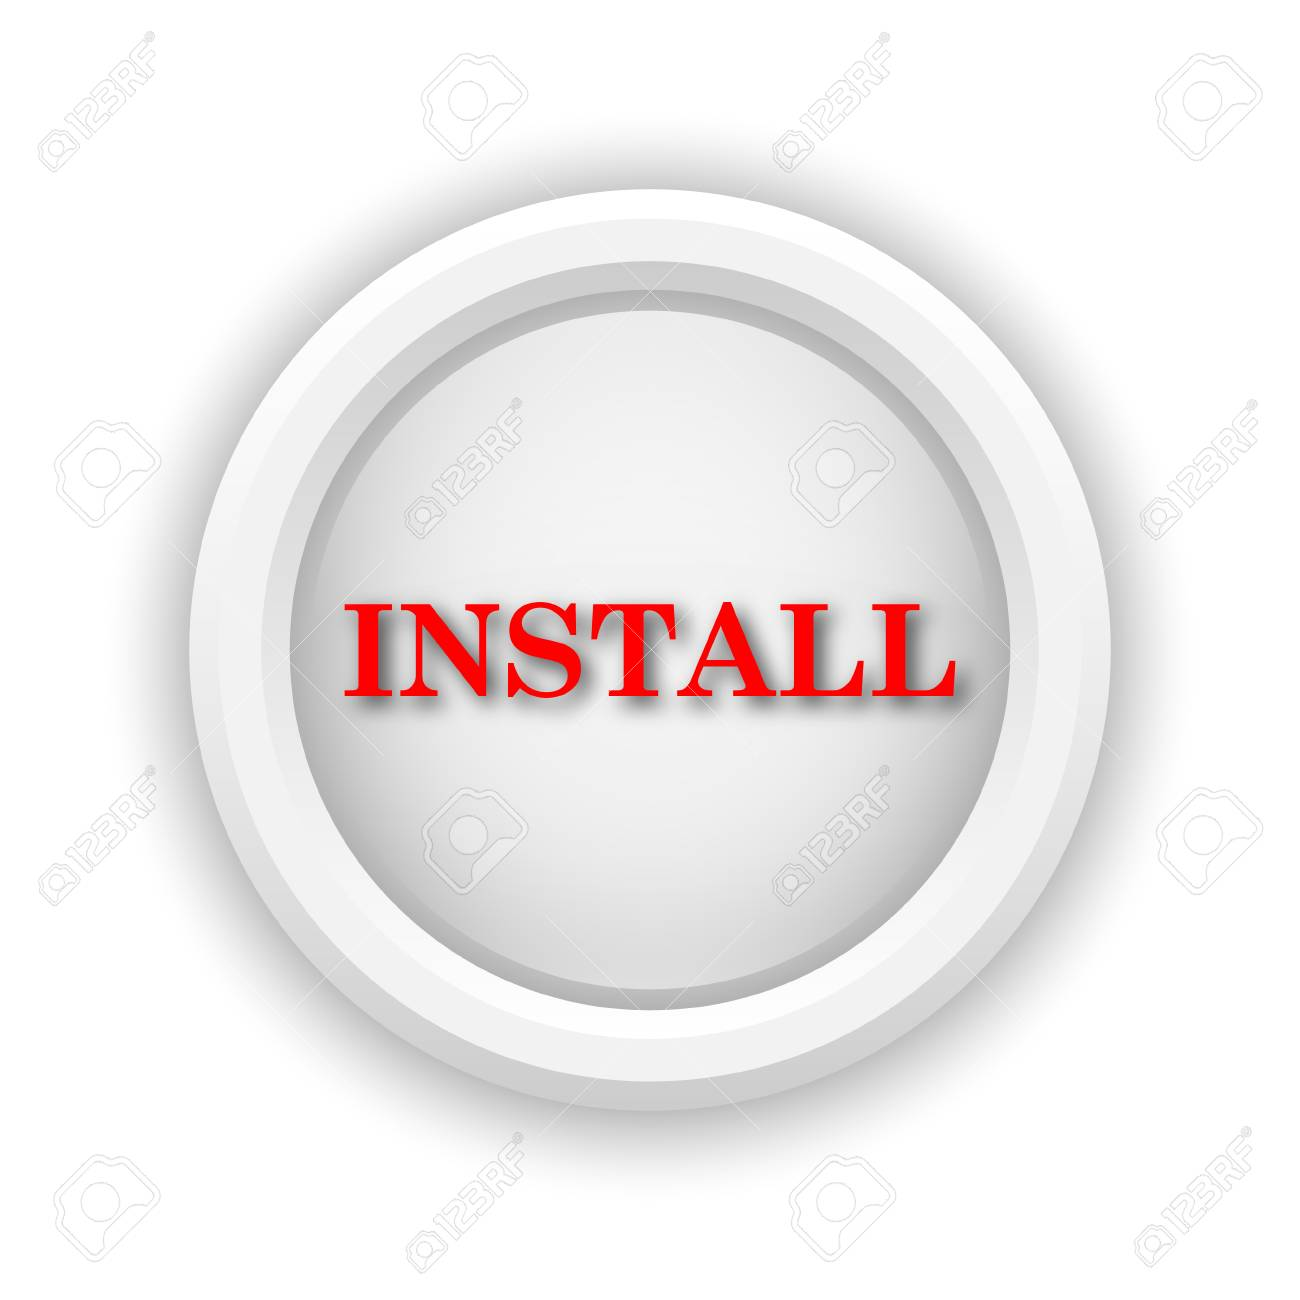 Round plastic icon with red design on white background Stock Photo - 25685403